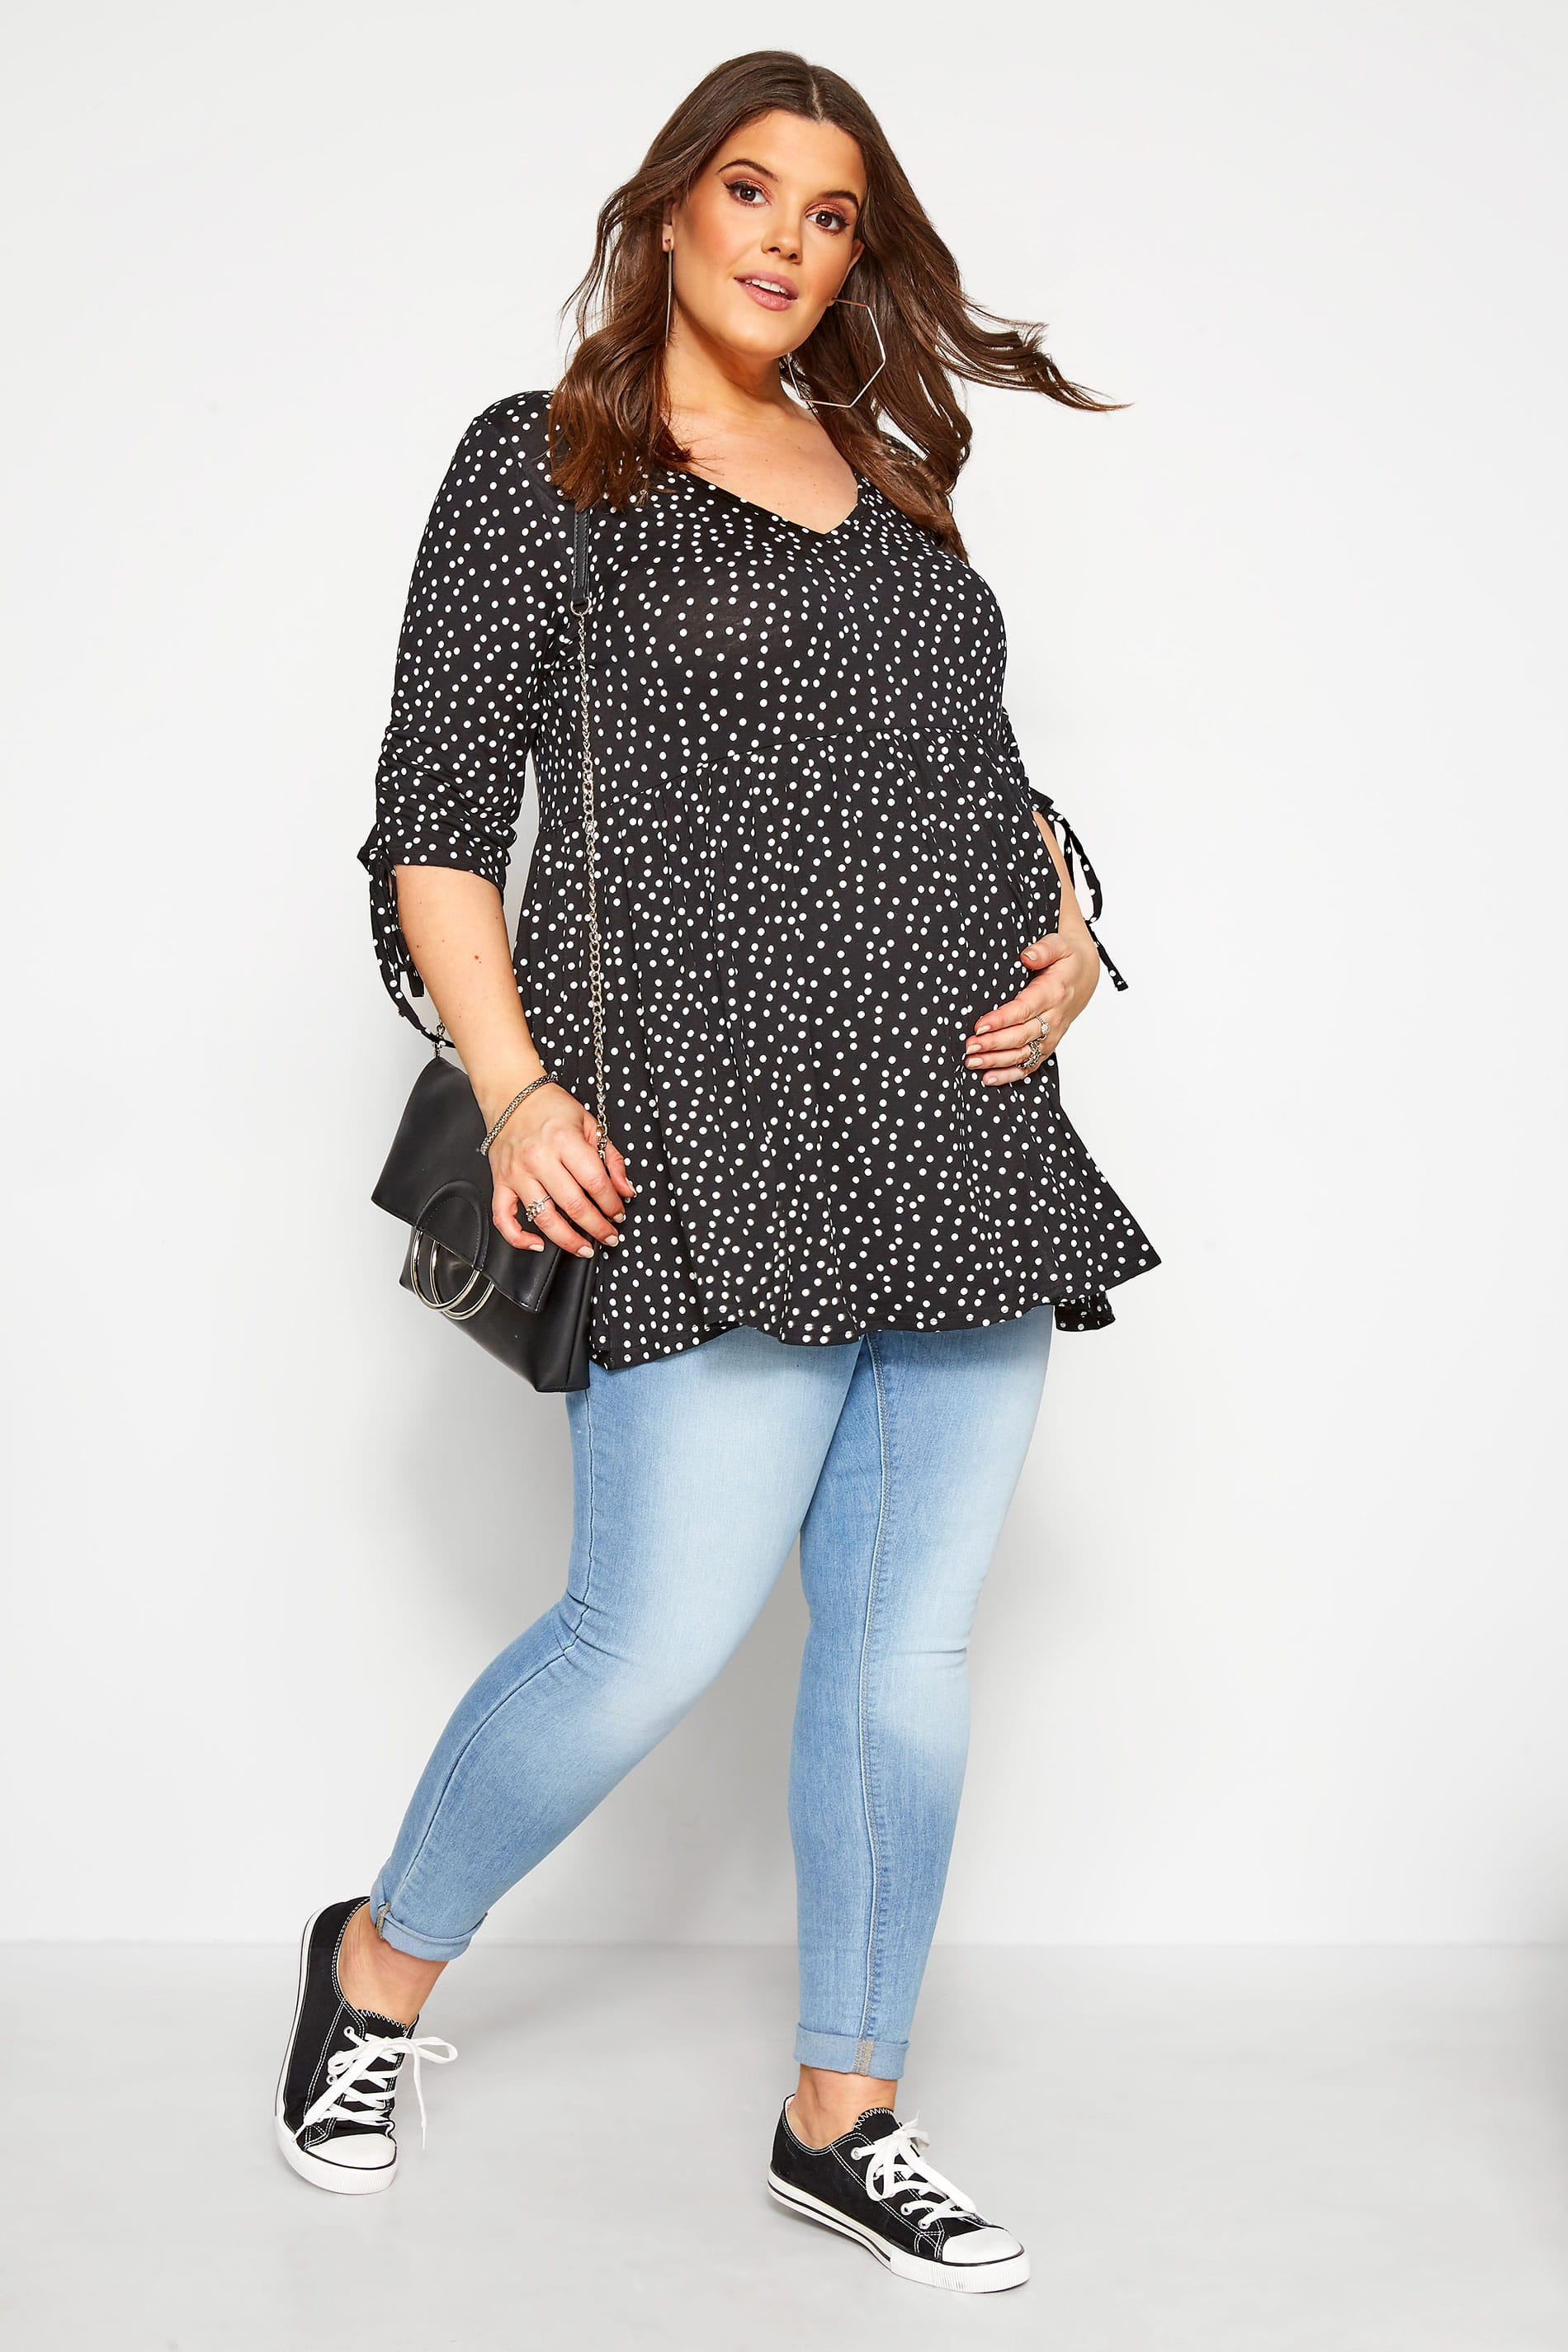 BUMP IT UP MATERNITY Black Polka Dot Smock Top